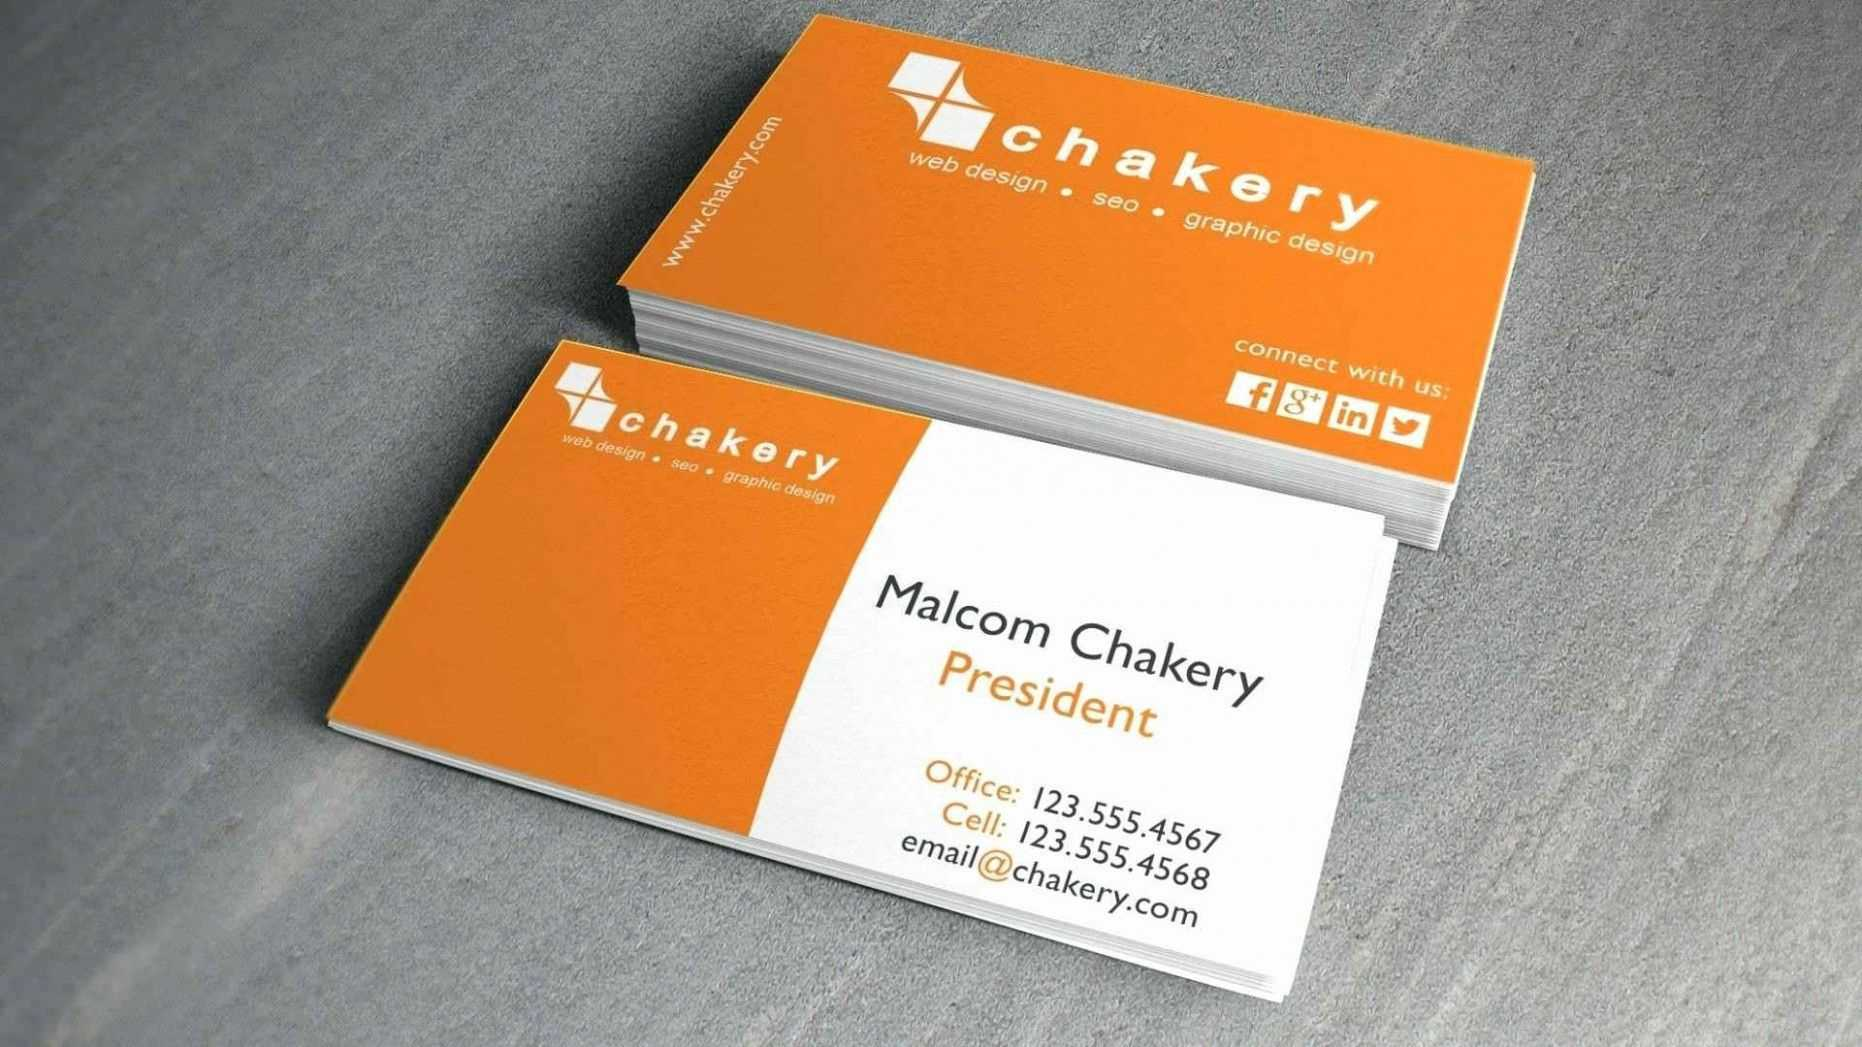 Pinanggunstore On Business Cards Pertaining To Office Depot Business Card Template